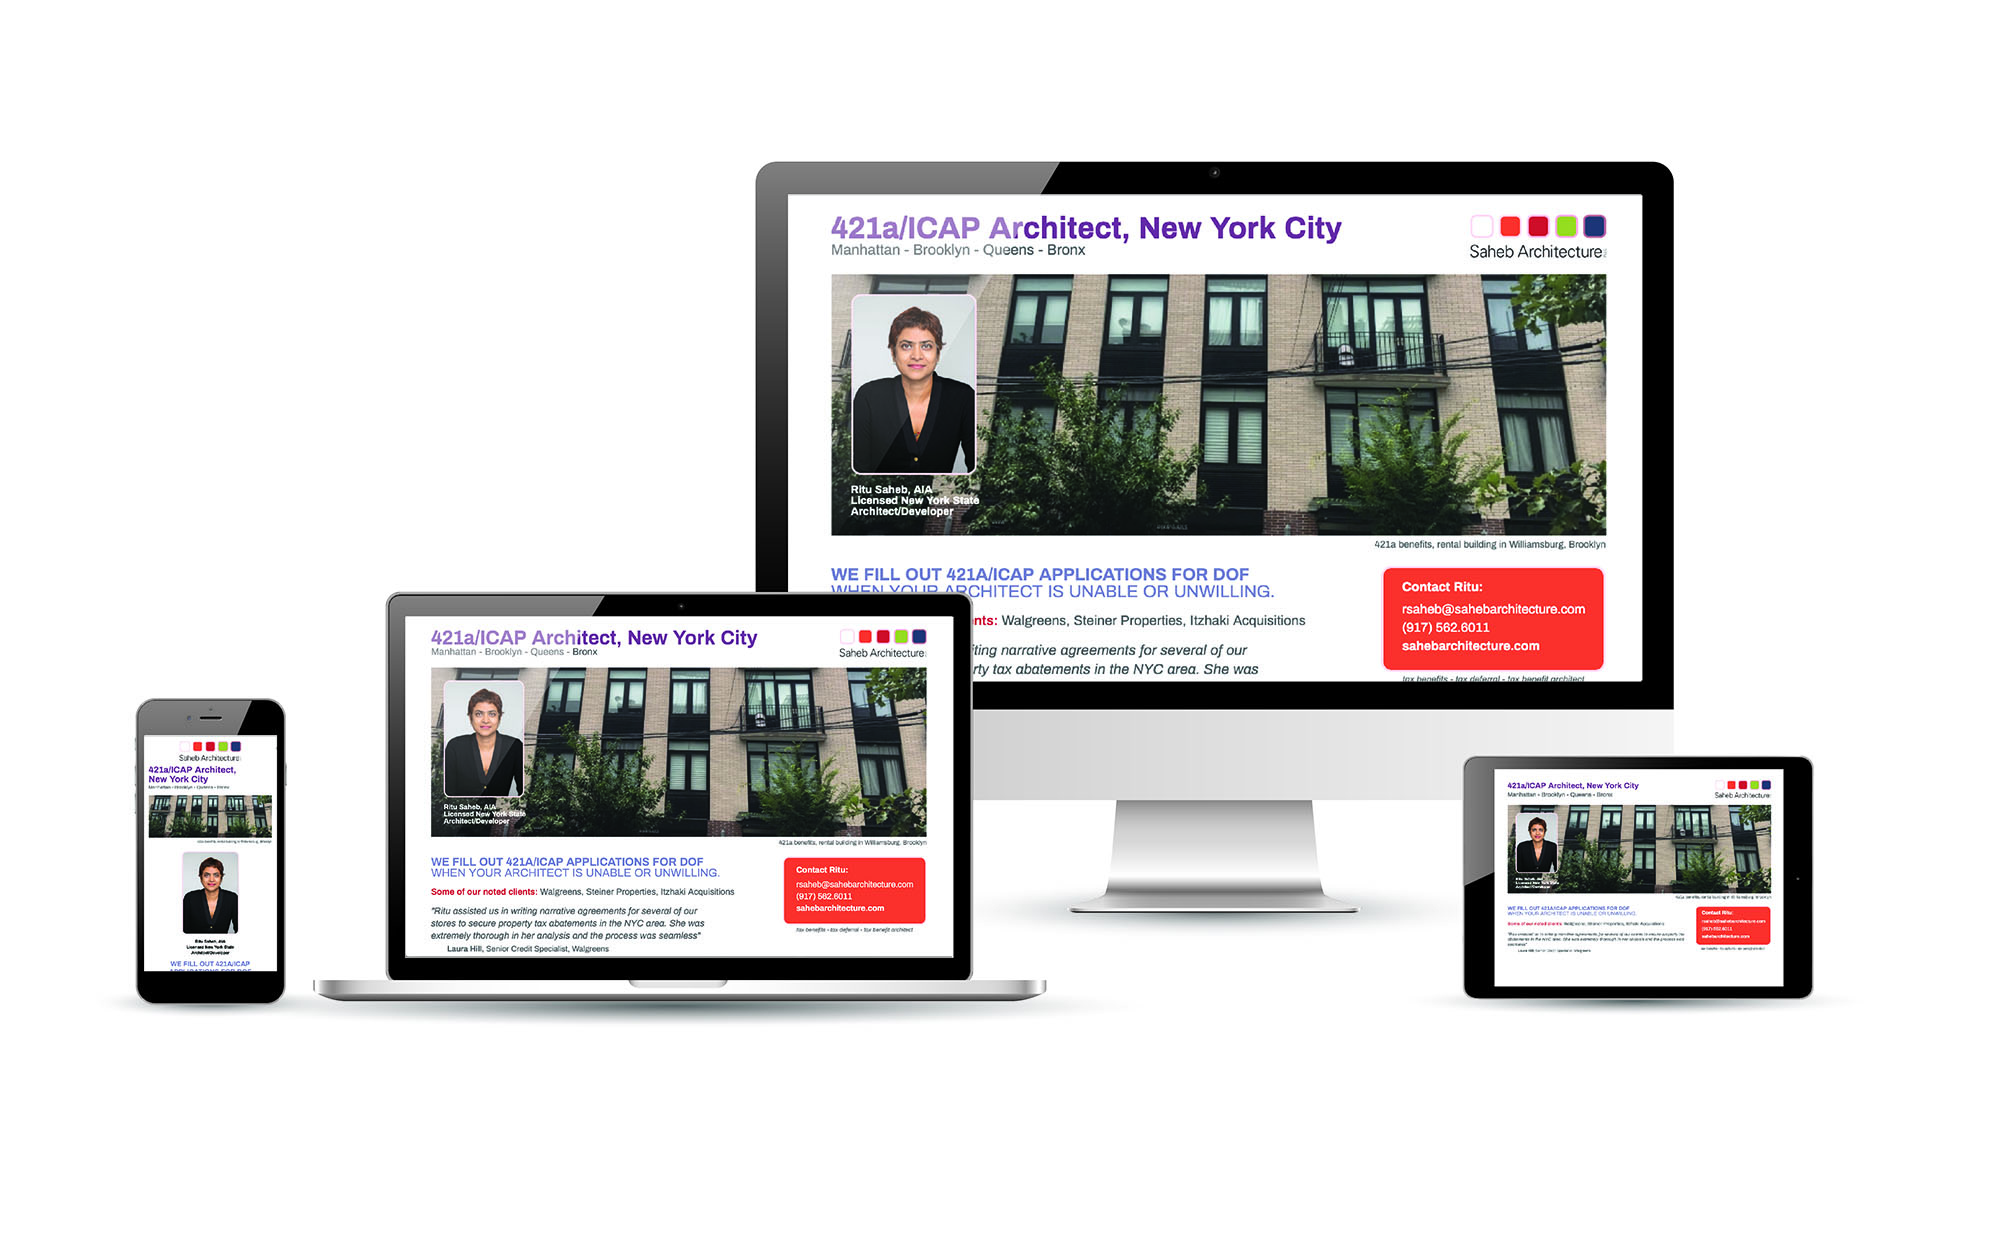 architect website, landing page design, new york city